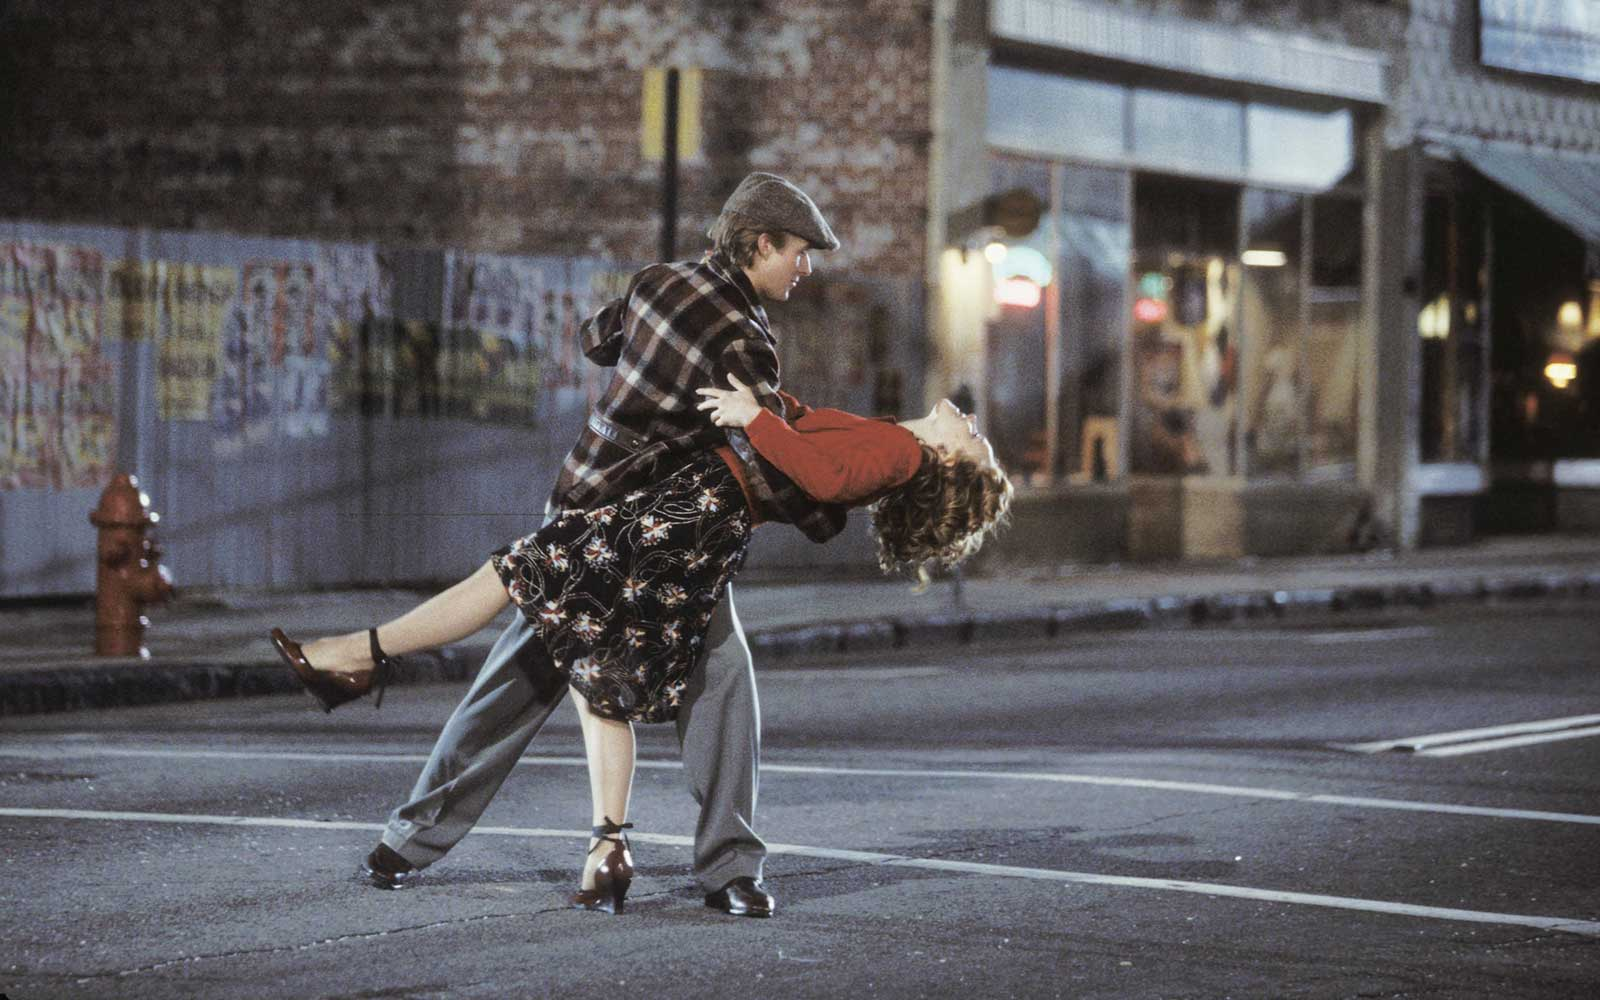 A scene from The Notebook